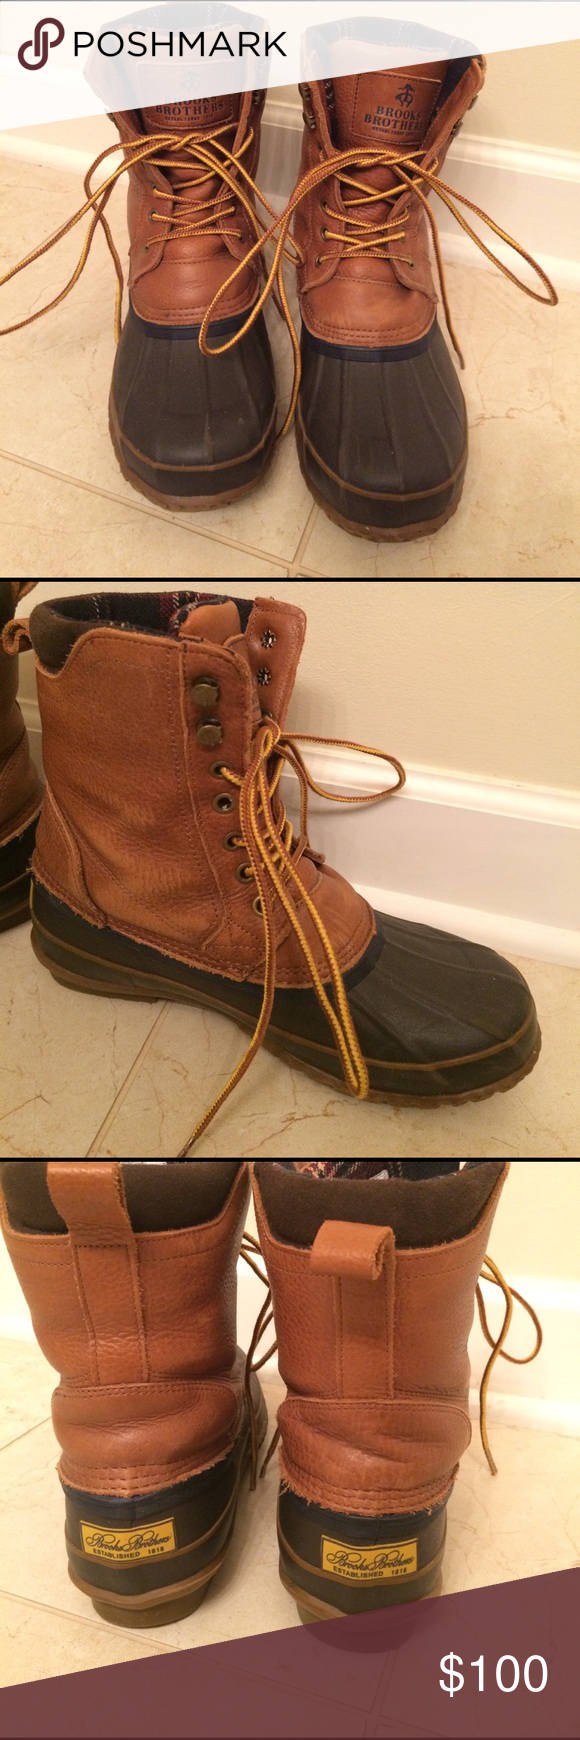 973648257ae Fits like a women s 9 9.5. Warm and spacious for thick socks! Leather upper  with insulated fur lining